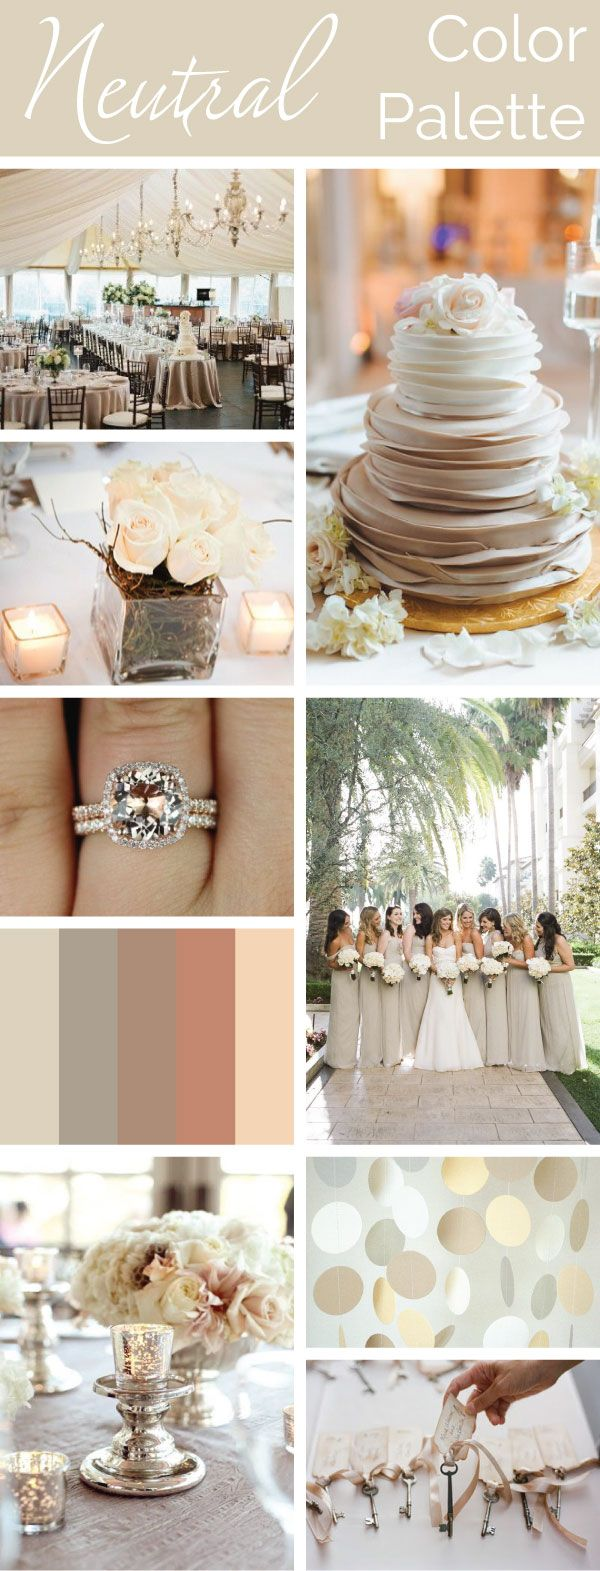 neutral color palette simple elegant versatile linentablecloth fresh off the blog pinterest neutral color palettes